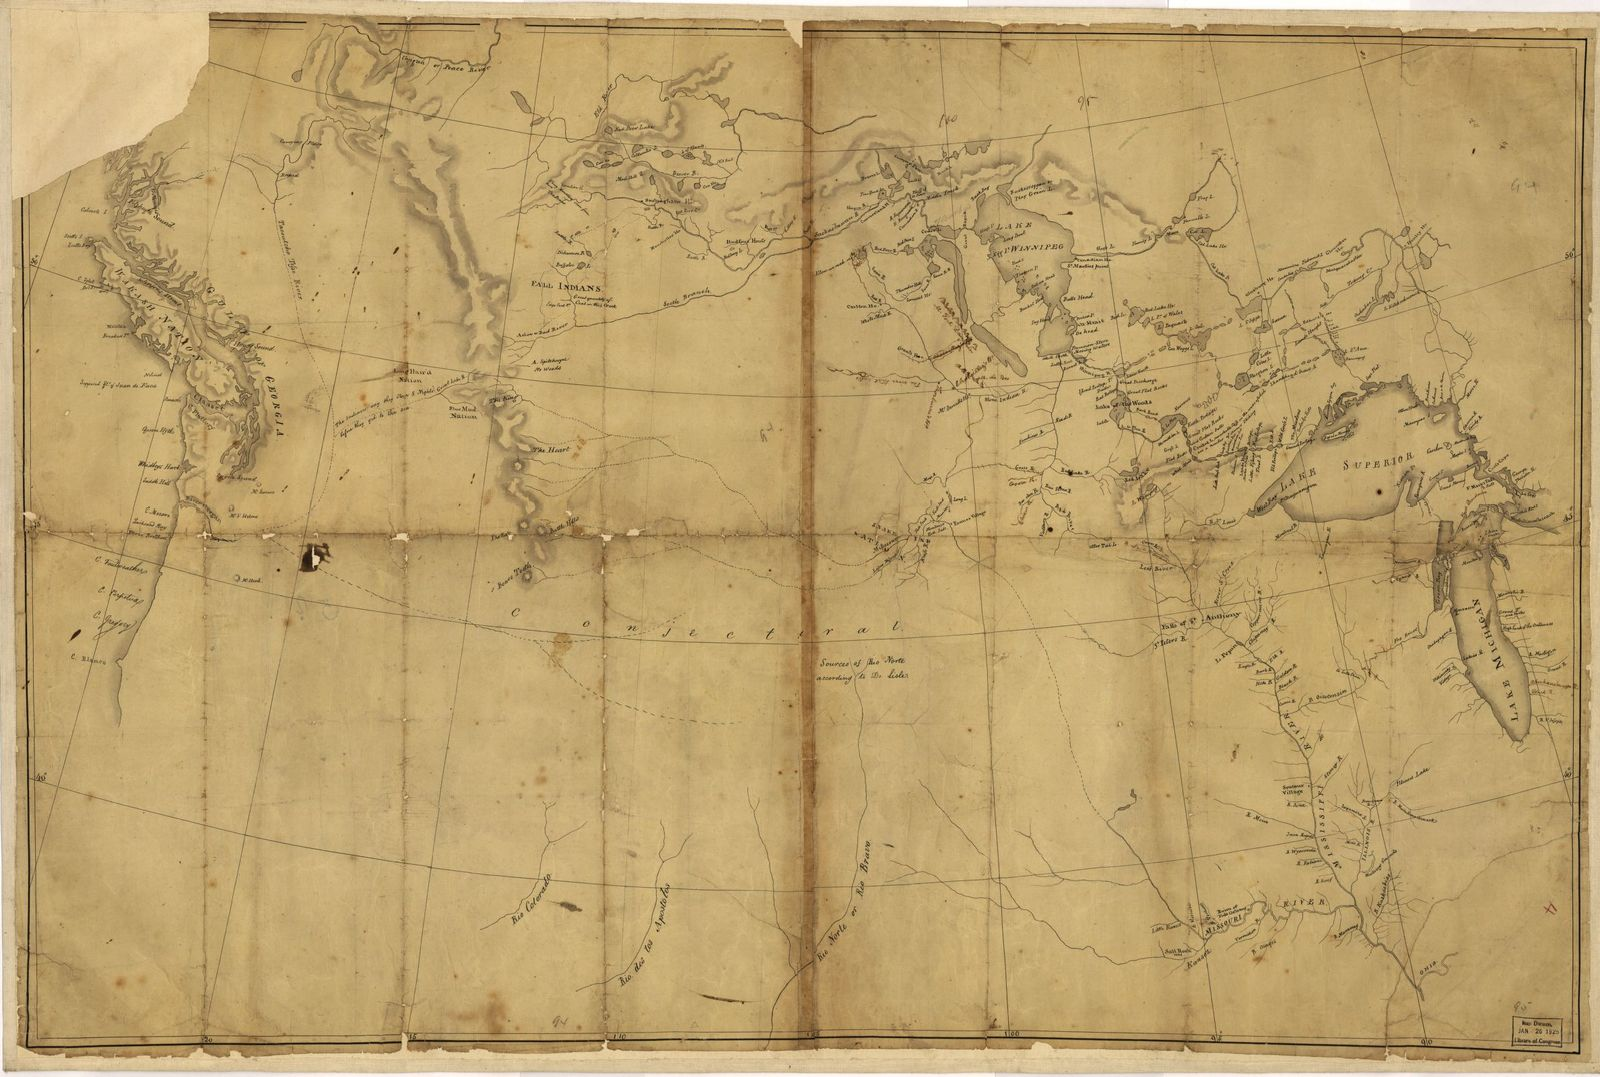 [Lewis and Clark map, with annotations in brown ink by Meriwether Lewis, tracing showing the Mississippi, the Missouri for a short distance above Kansas, Lakes Michigan, Superior, and Winnipeg, and the country onwards to the Pacific].